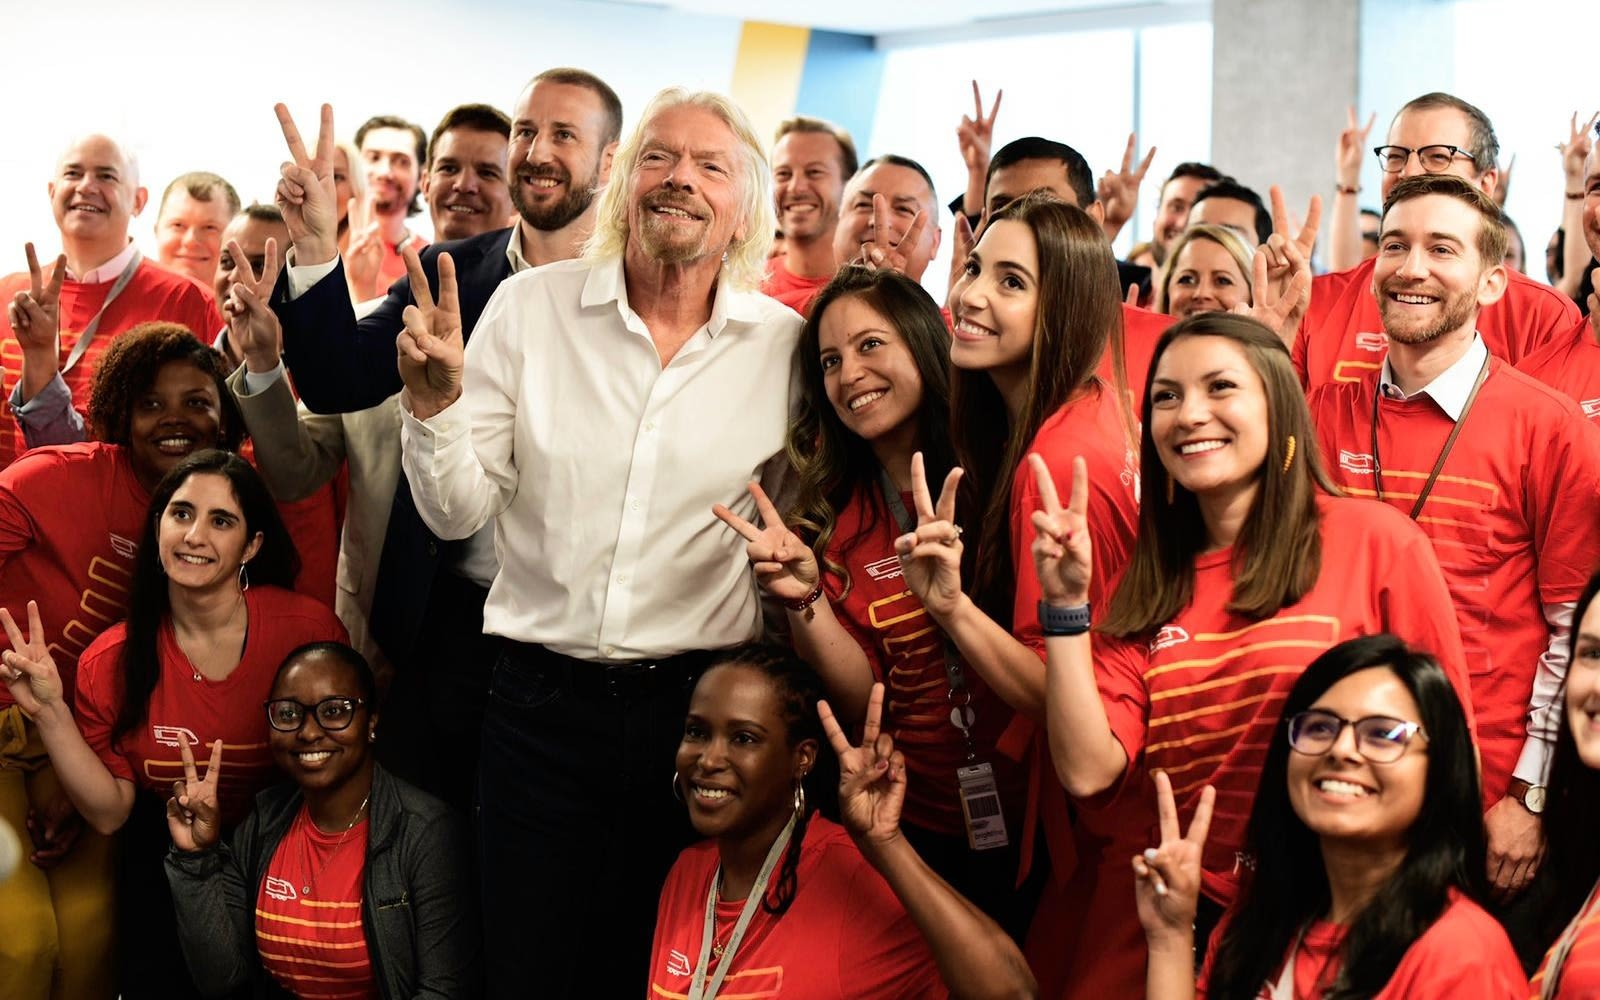 Richard Branson and the Virgin Trains USA team pose for a photo